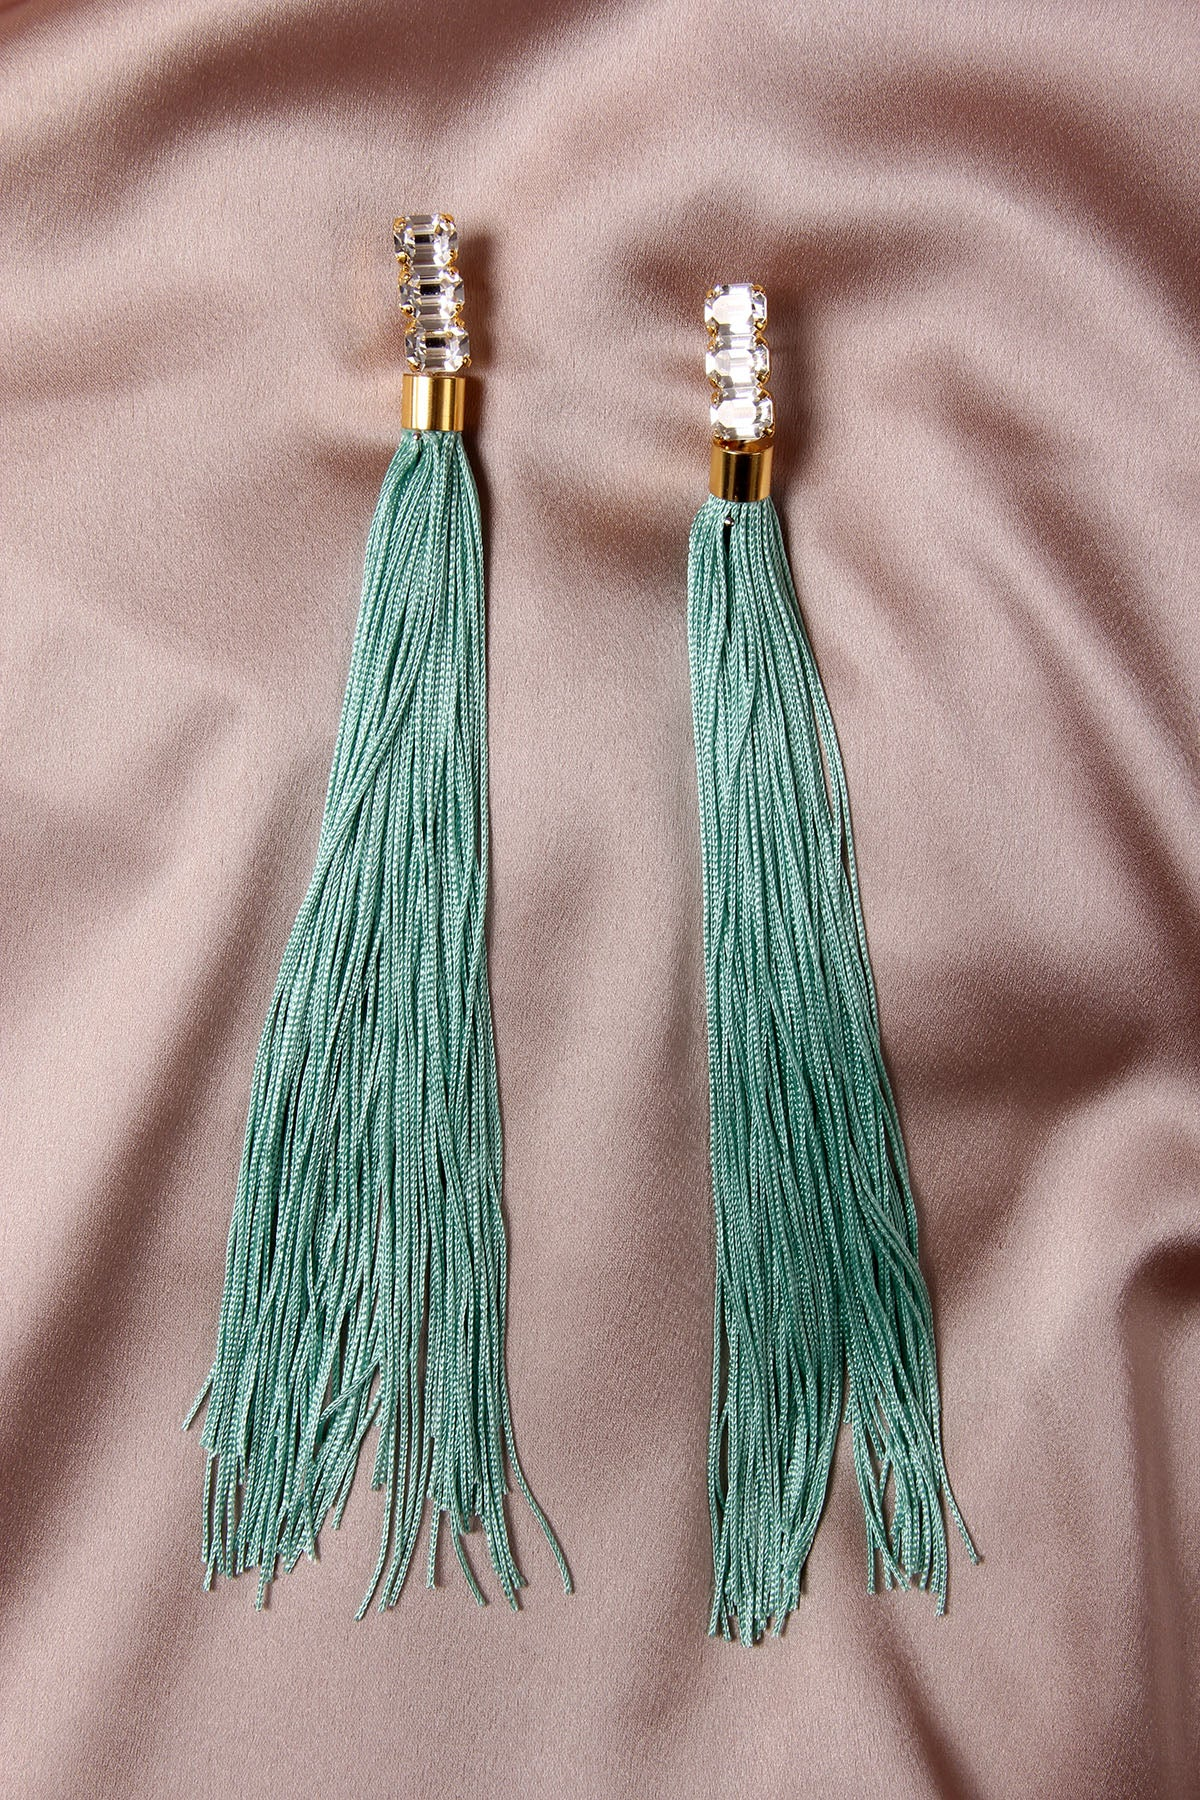 THE WEEPING SOIL TURQUOISE EARRINGS